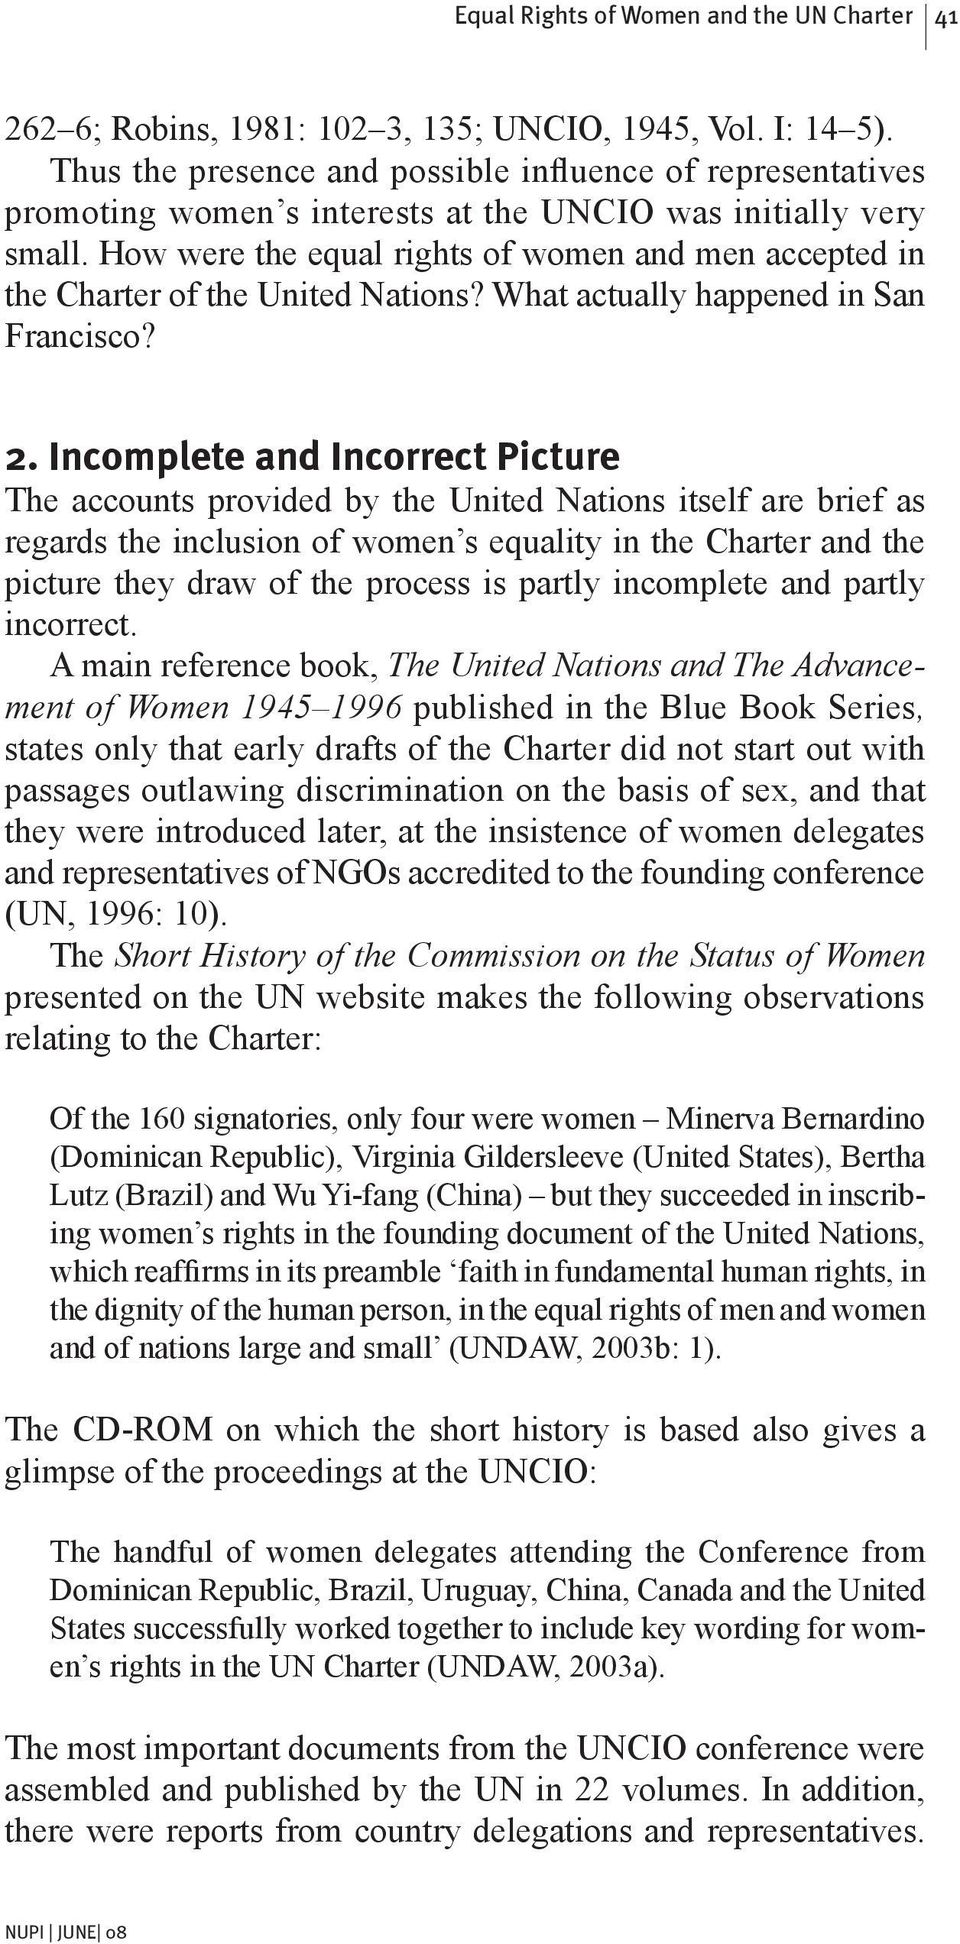 How were the equal rights of women and men accepted in the Charter of the United Nations? What actually happened in San Francisco? 2.